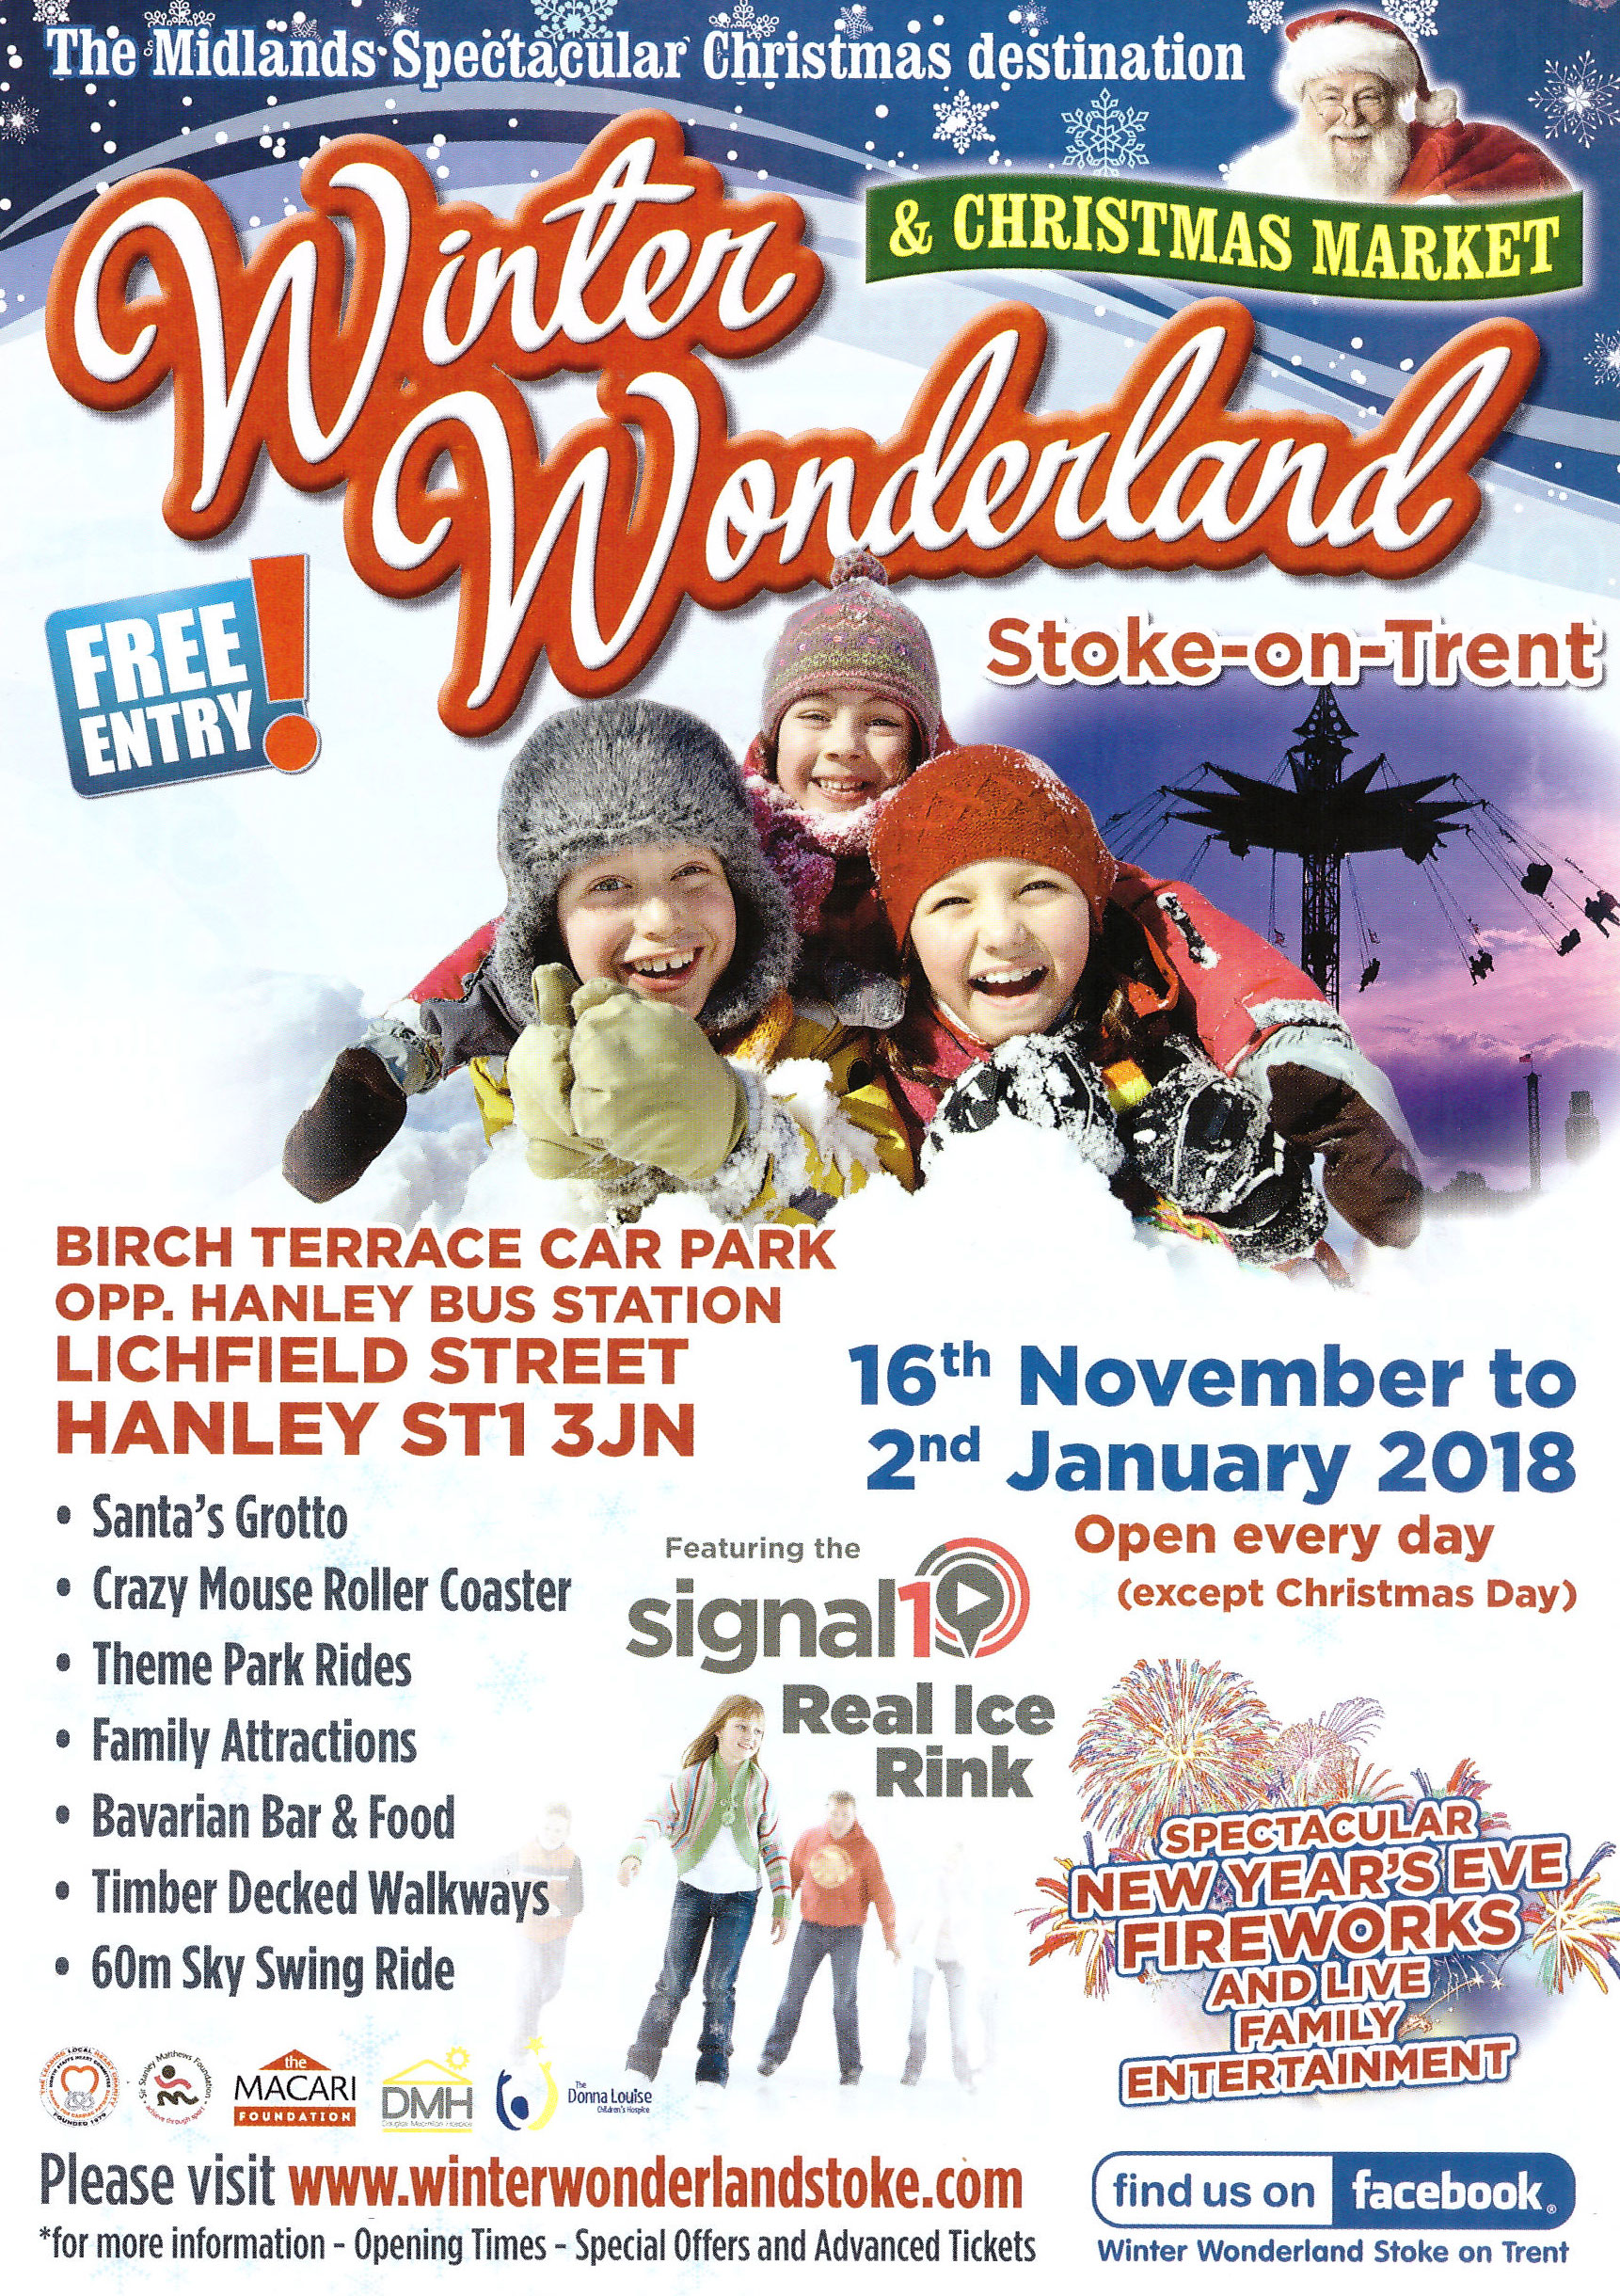 Winter-Wonderland -Christmas-Market-Stoke-on-Trent-Yeah-Lifestyle